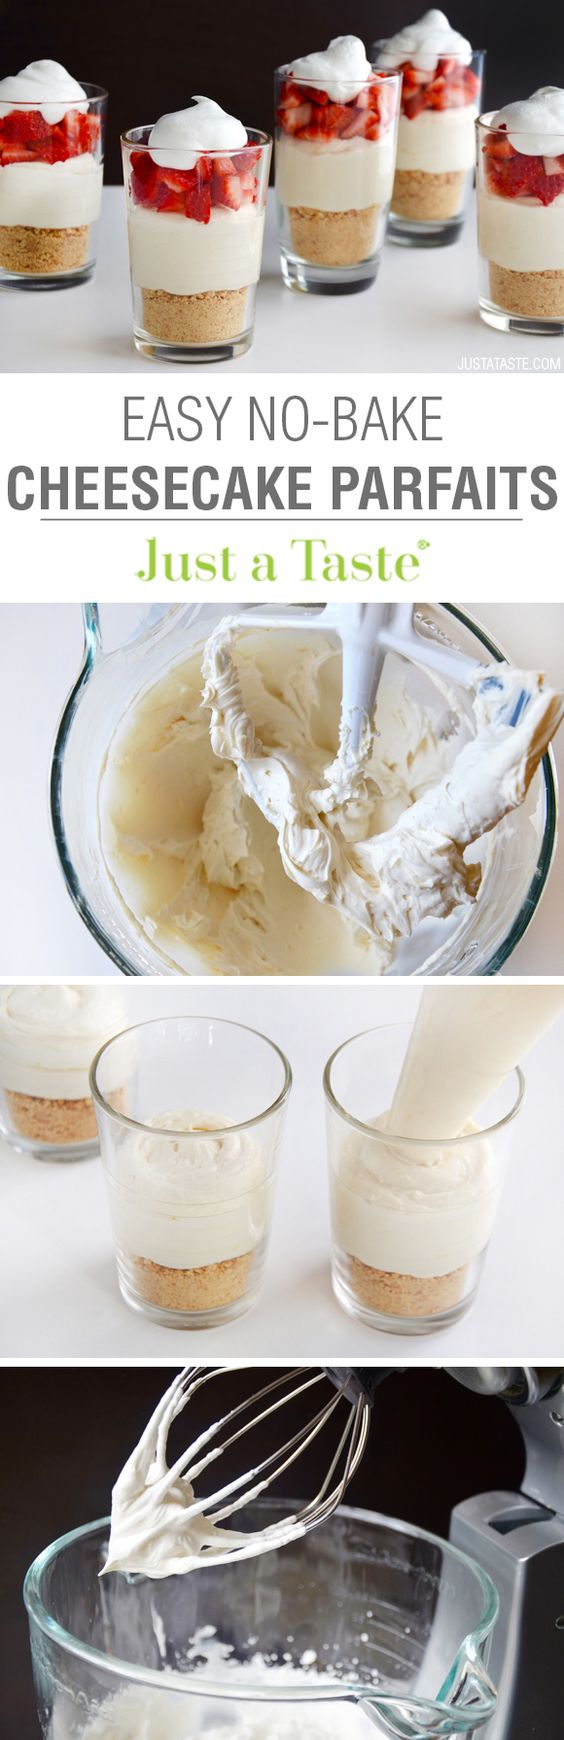 Easy No-Bake Cheesecake Parfaits recipe via justataste.com